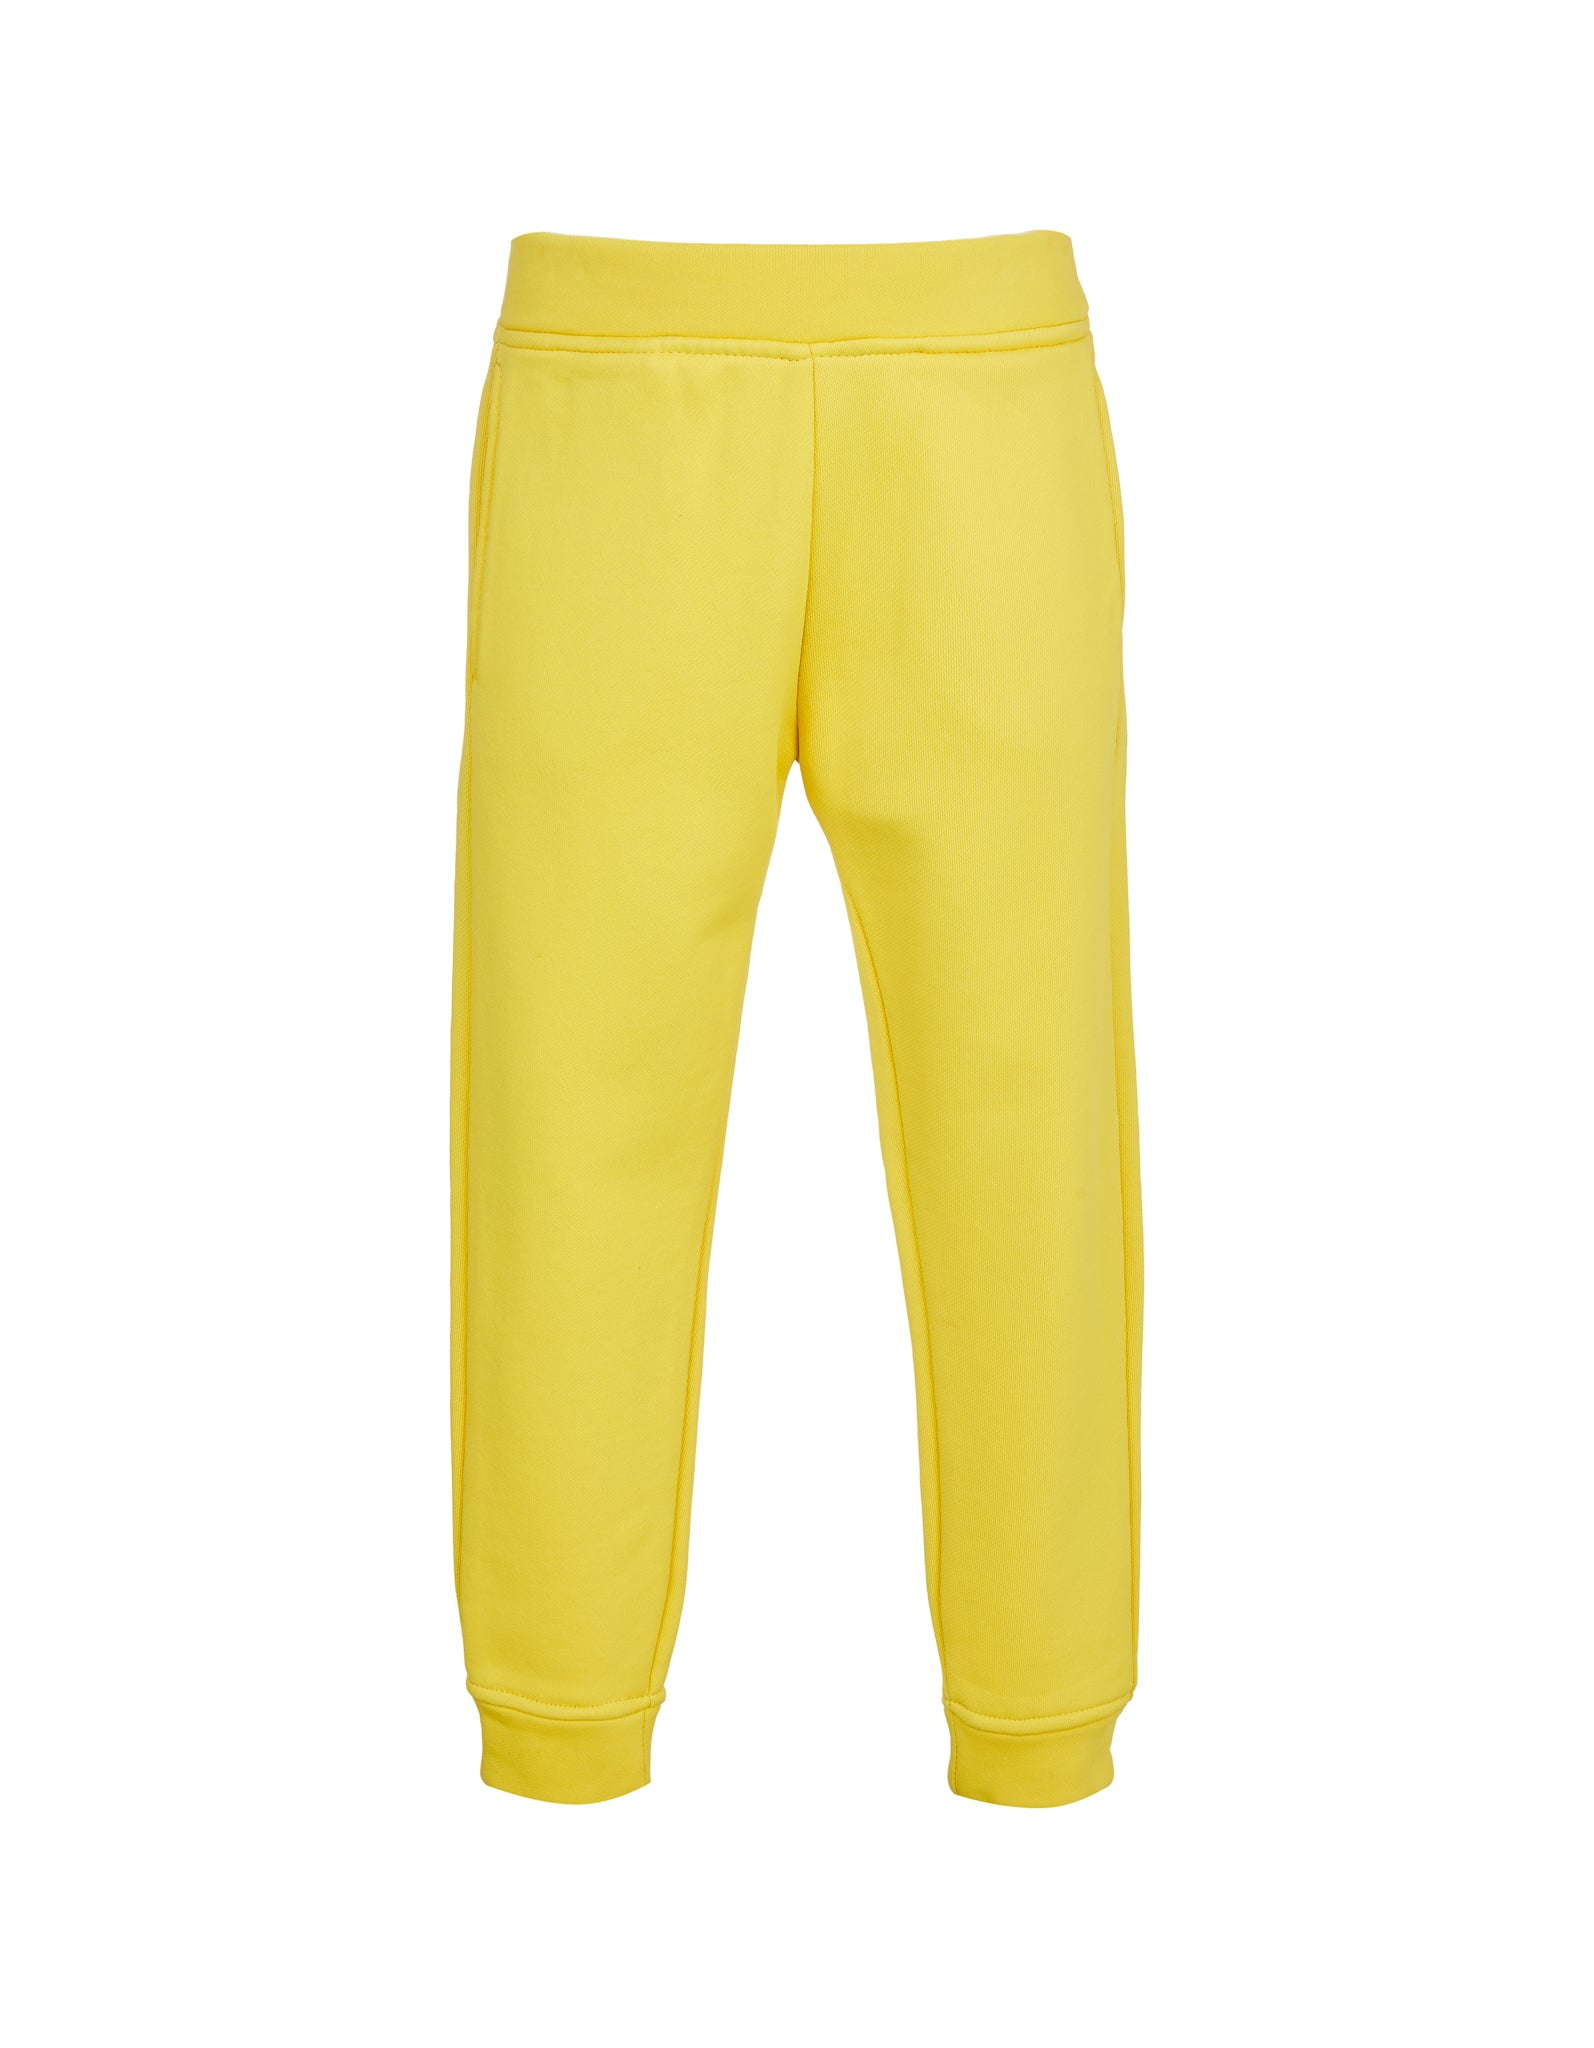 FLEECE ELASTIC CUFF TROUSERS IN YELLOW